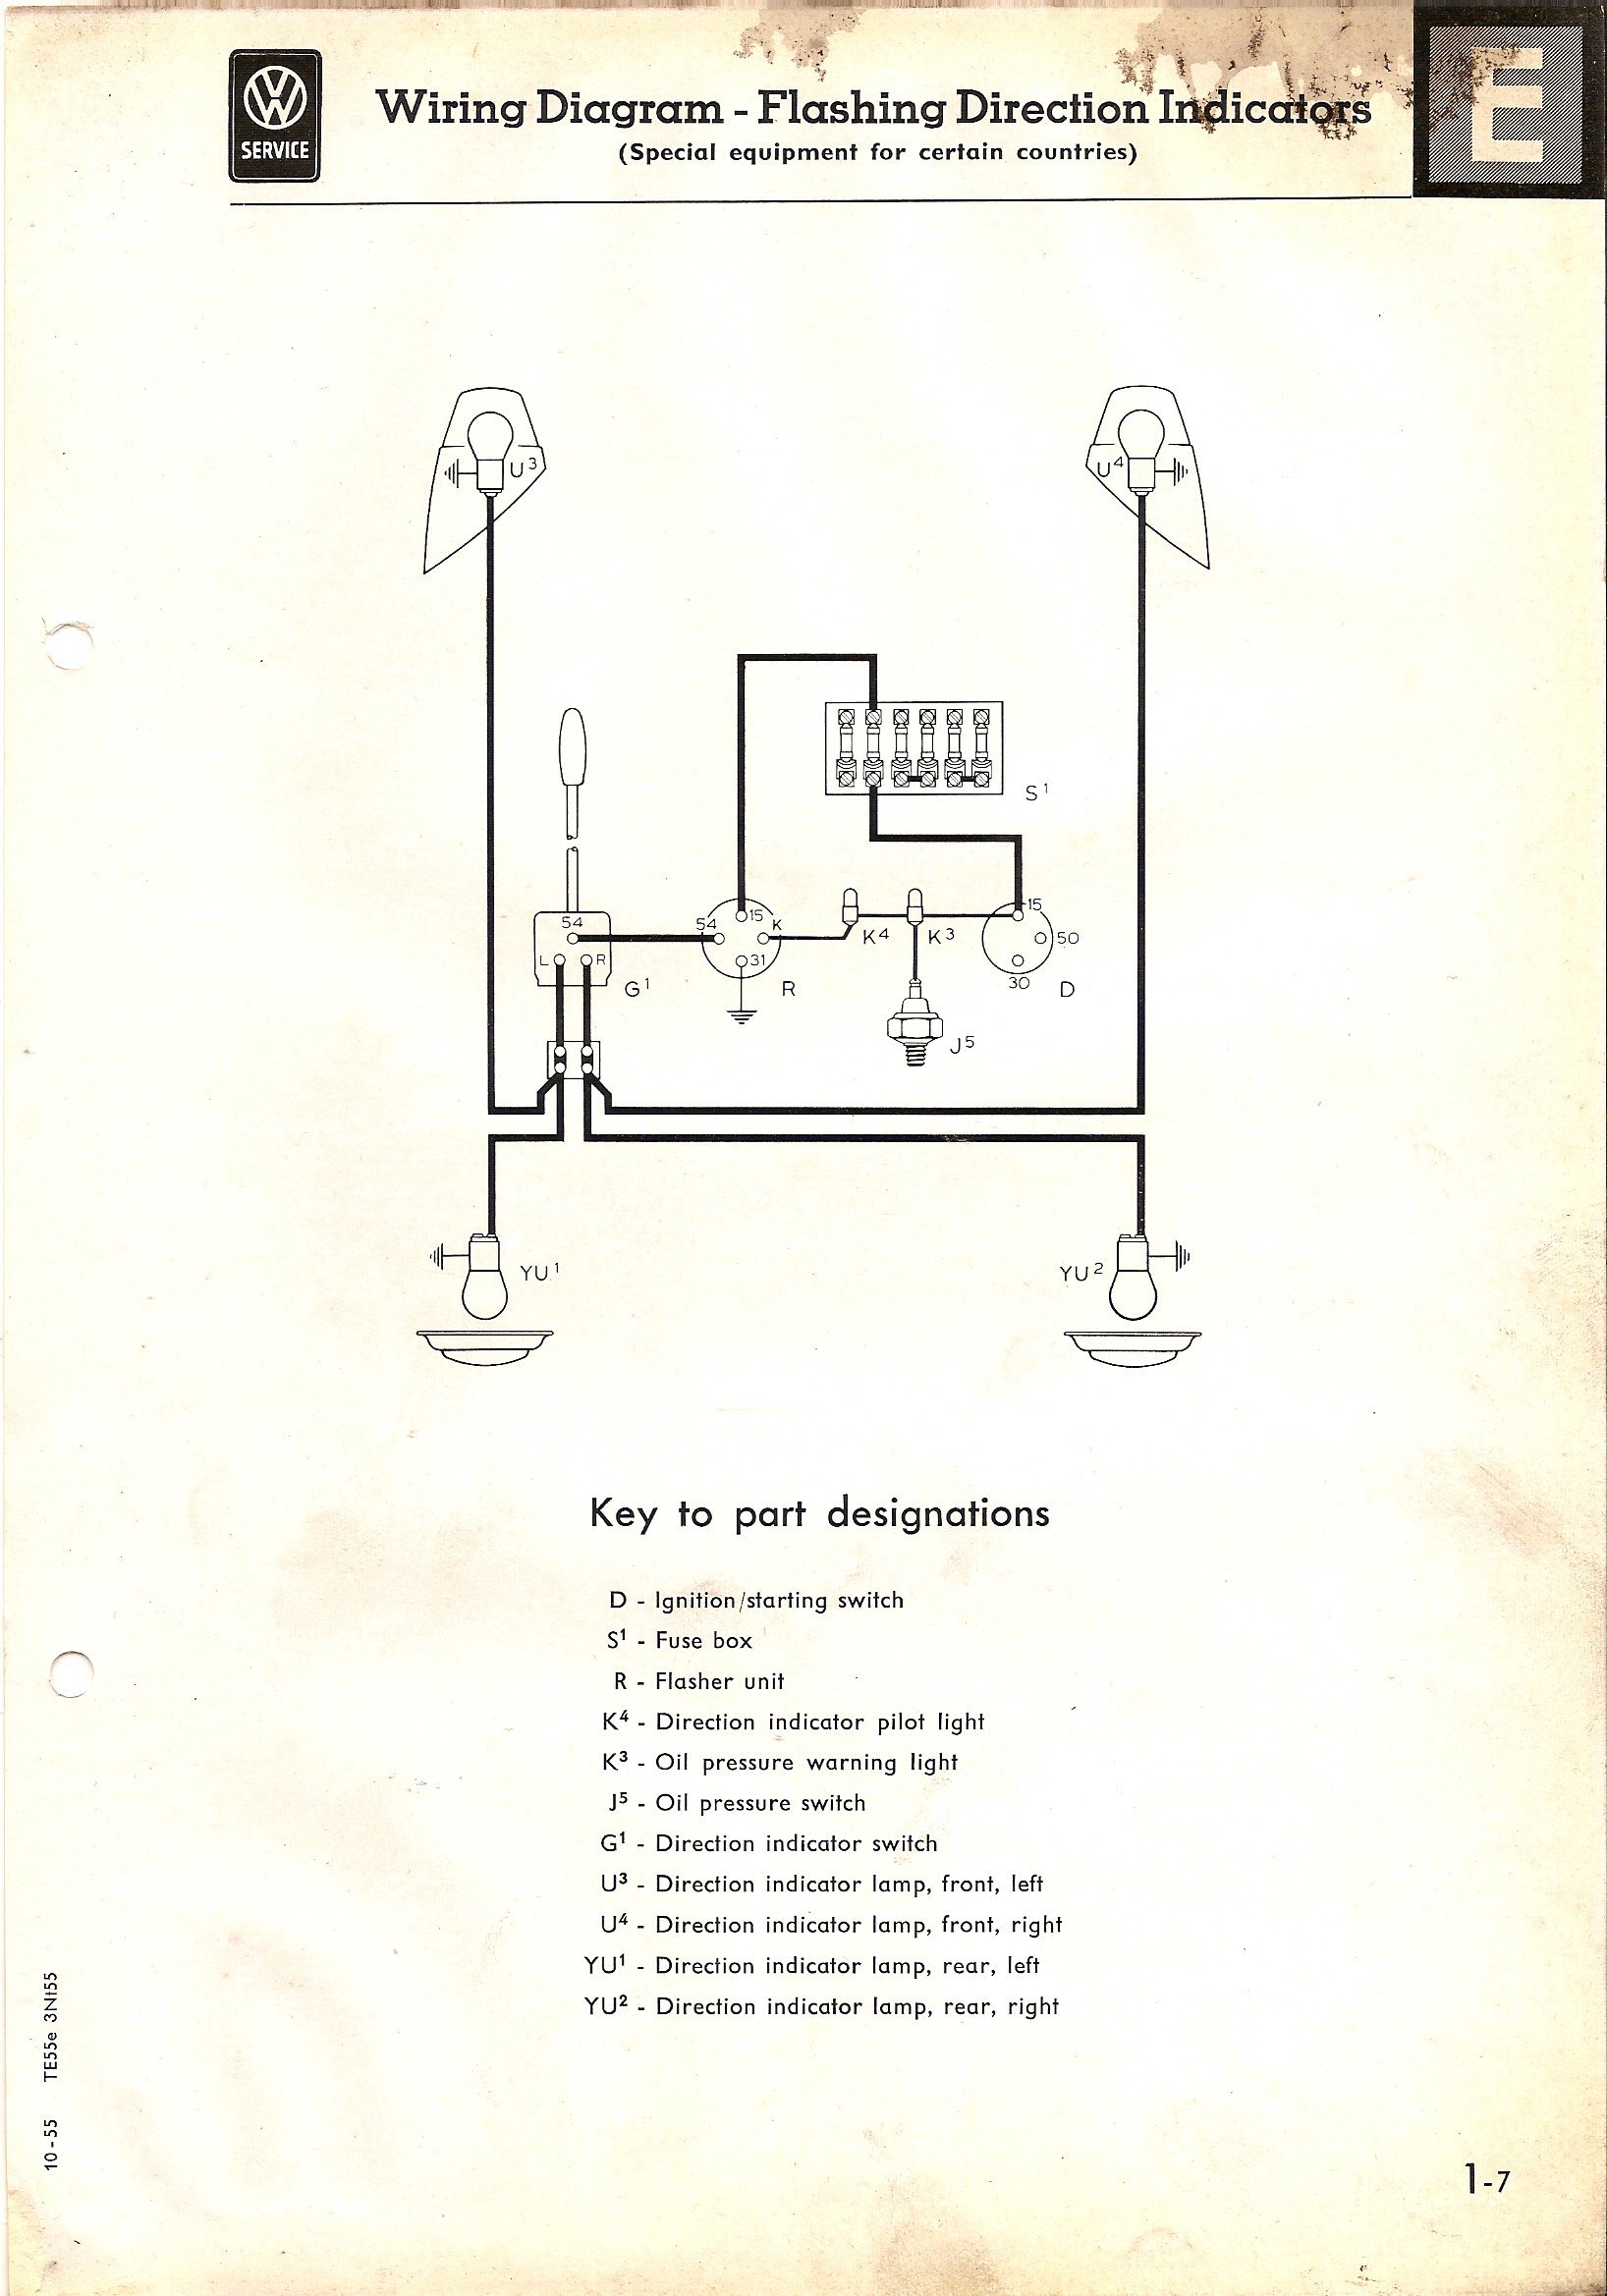 76 Gm Turn Signal Wire Schematic Wiring Diagram Libraries Thesamba Com Type 2 Diagrams76 17